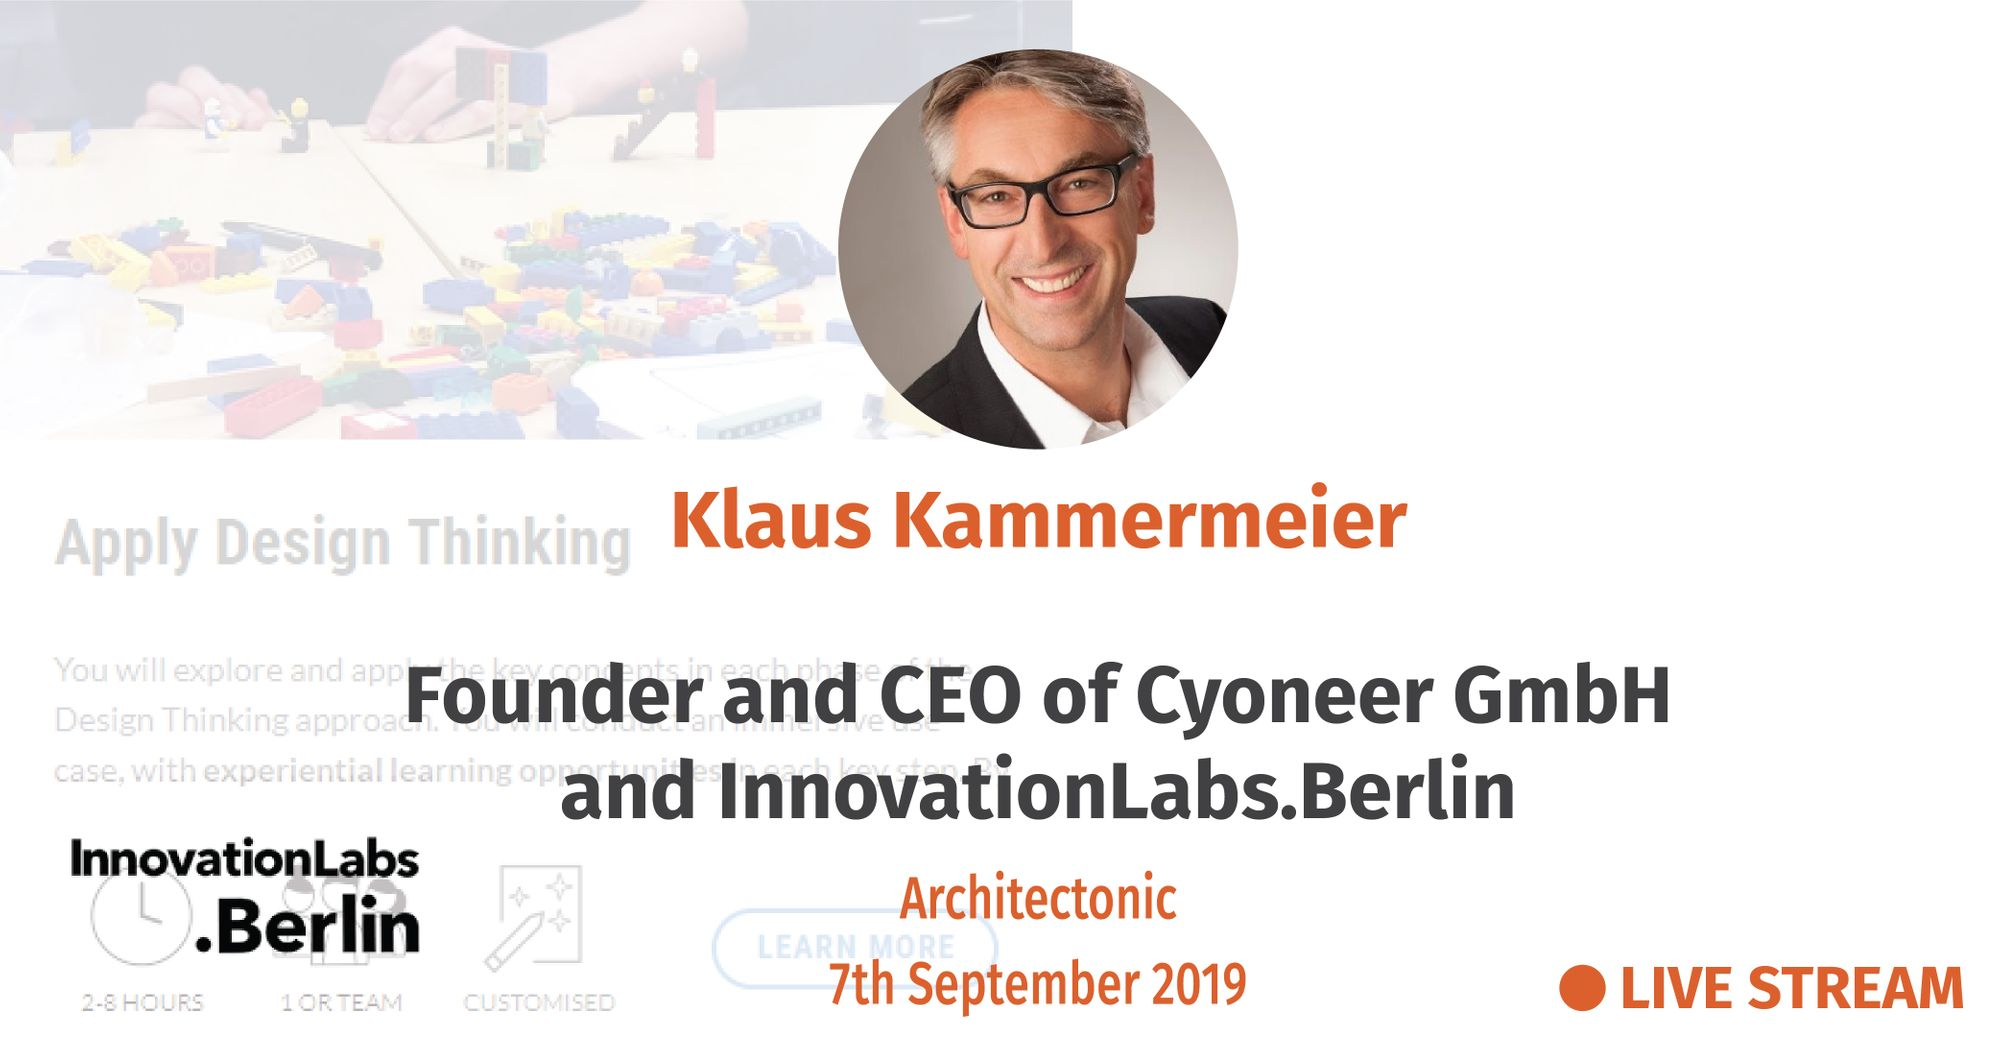 Innovation, or 'how only thousands of hours of hard work enable true moments of innovation and positive change' - Klaus Kammermeier